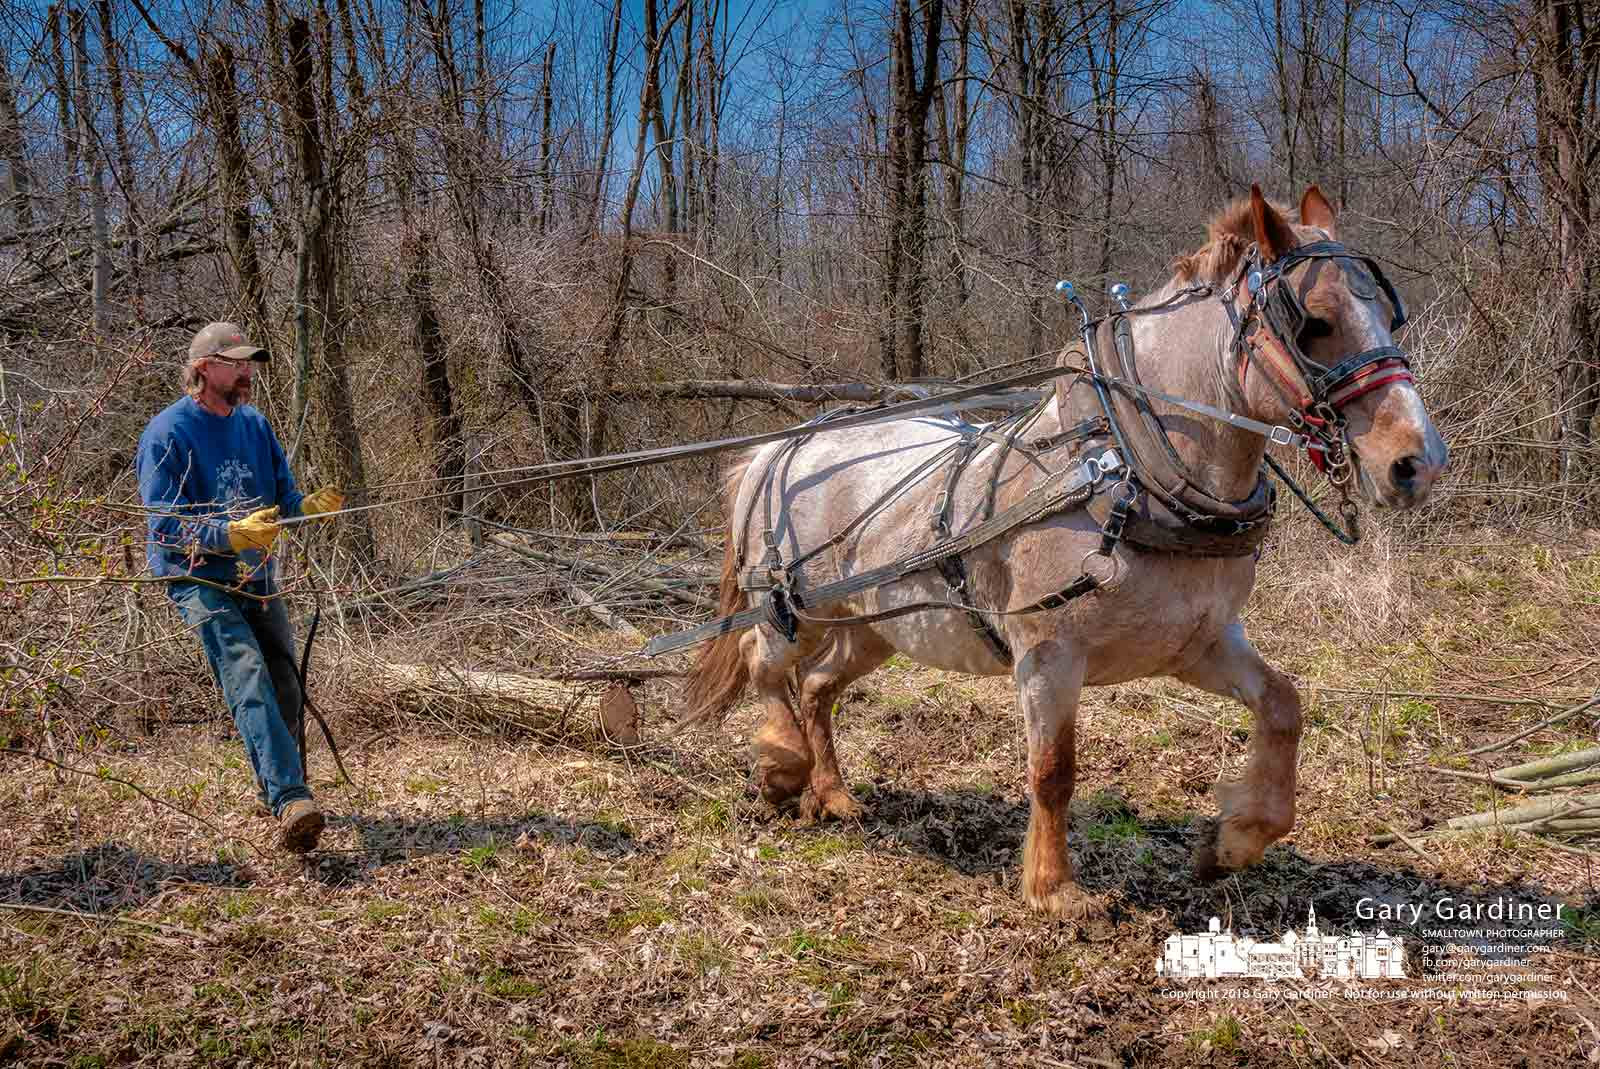 Farmer Rodney Parker guides 15-year-old Belgian draft horse, Bell, as she drags timber from fields on Africa Road being cleared for field crops this summer. My Final Photo for April 11, 2018.